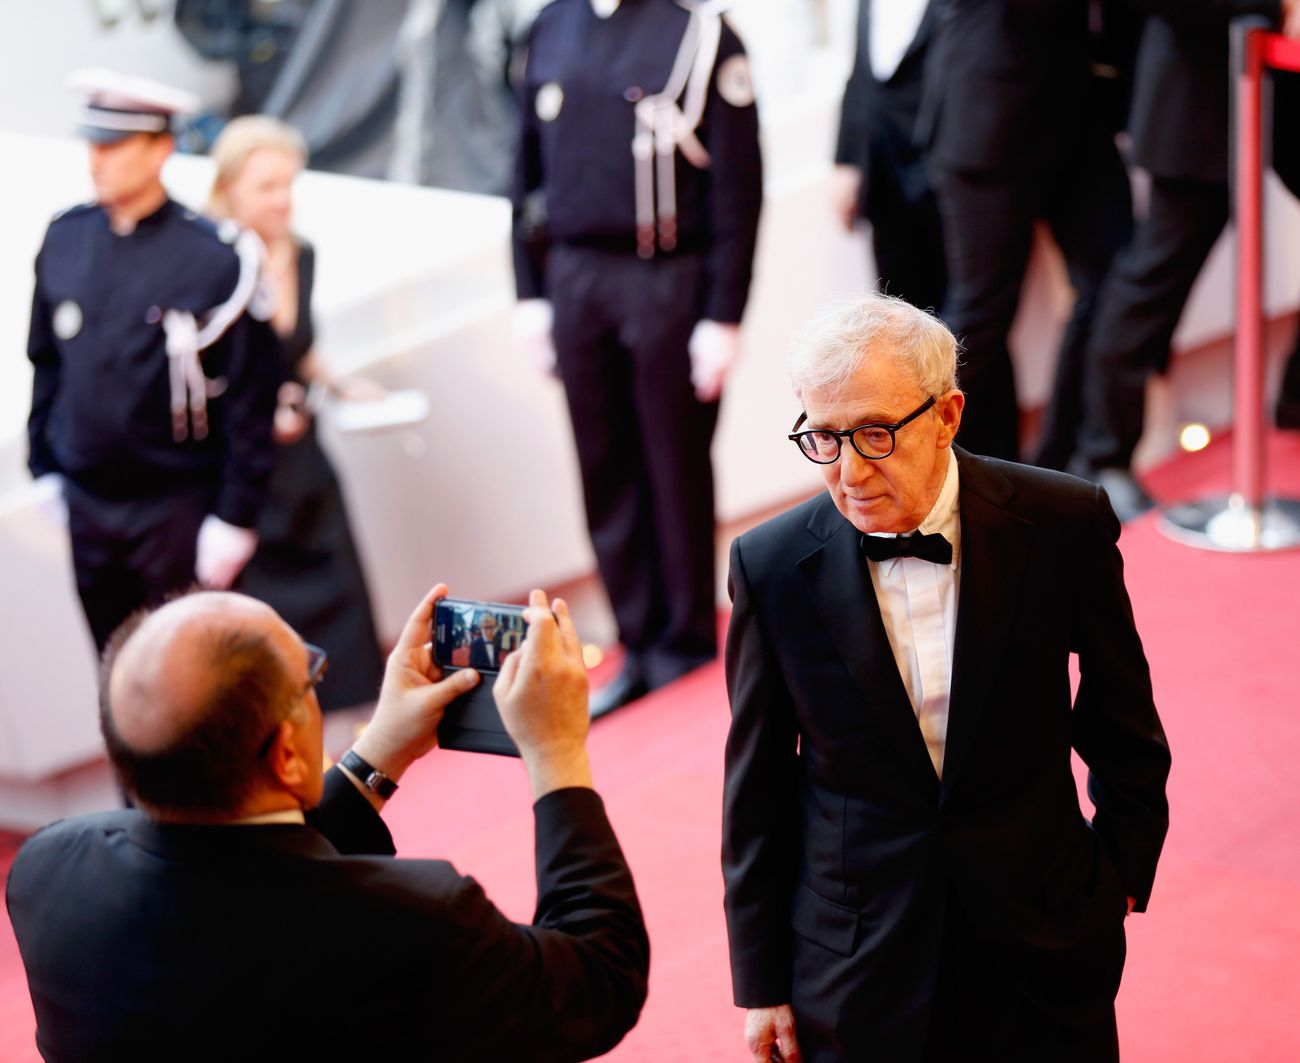 The Trailer For Woody Allen's New Film Has Us Concerned